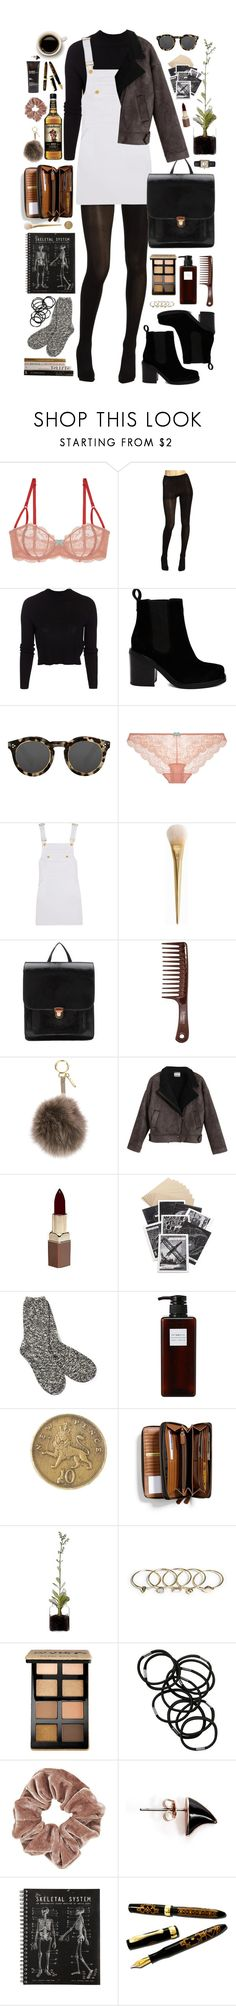 """Outfit #133"" by black-clouds ❤ liked on Polyvore featuring Heidi Klum Intimates, Hue, ONLY, ASOS, Illesteva, Frame Denim, Morgan, Hstyle, Fendi and Chicnova Fashion"